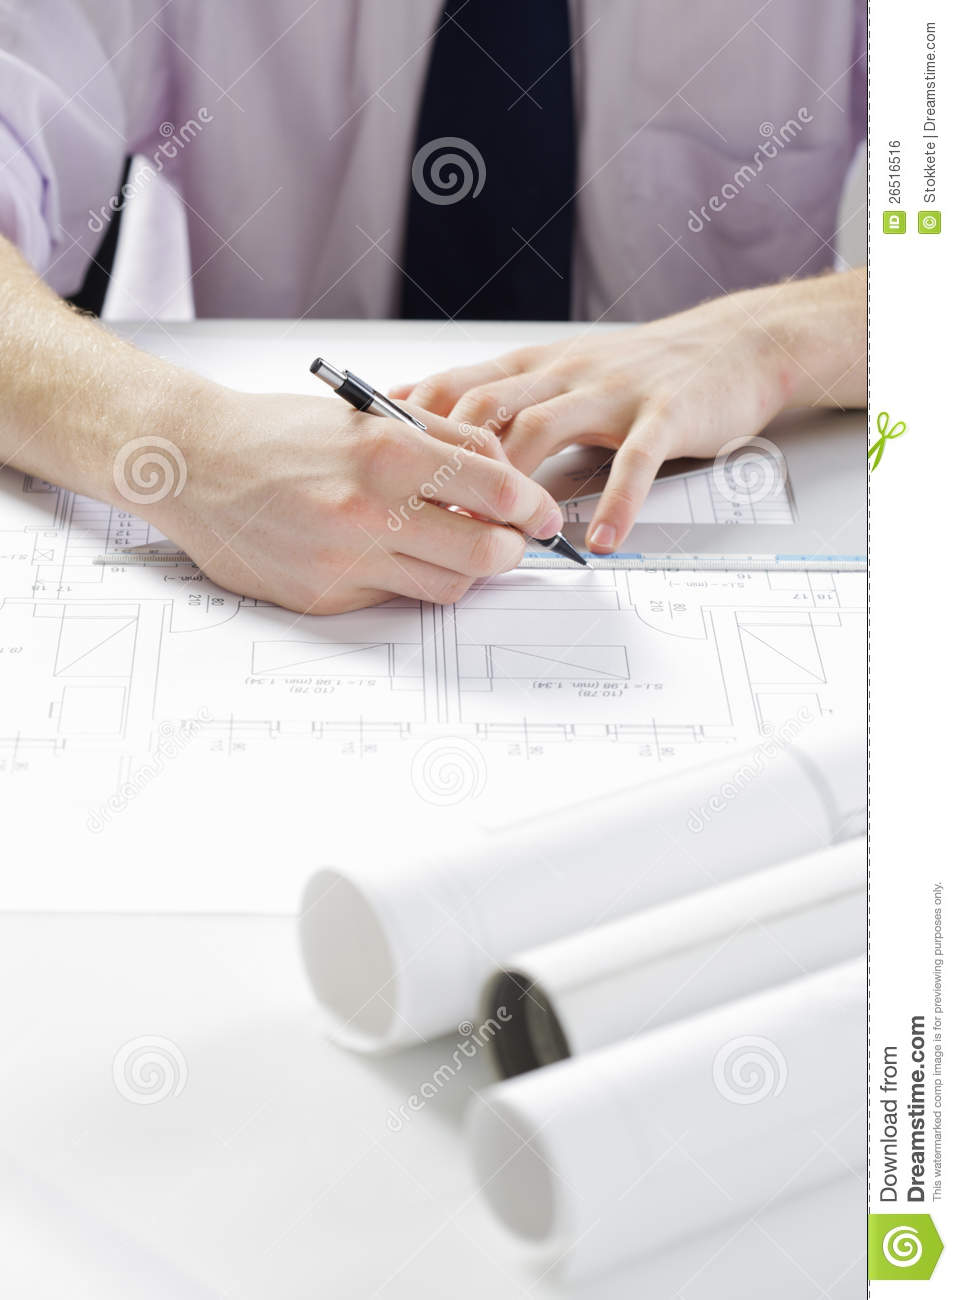 Architect at work royalty free stock image image 26516516 for Architect at work